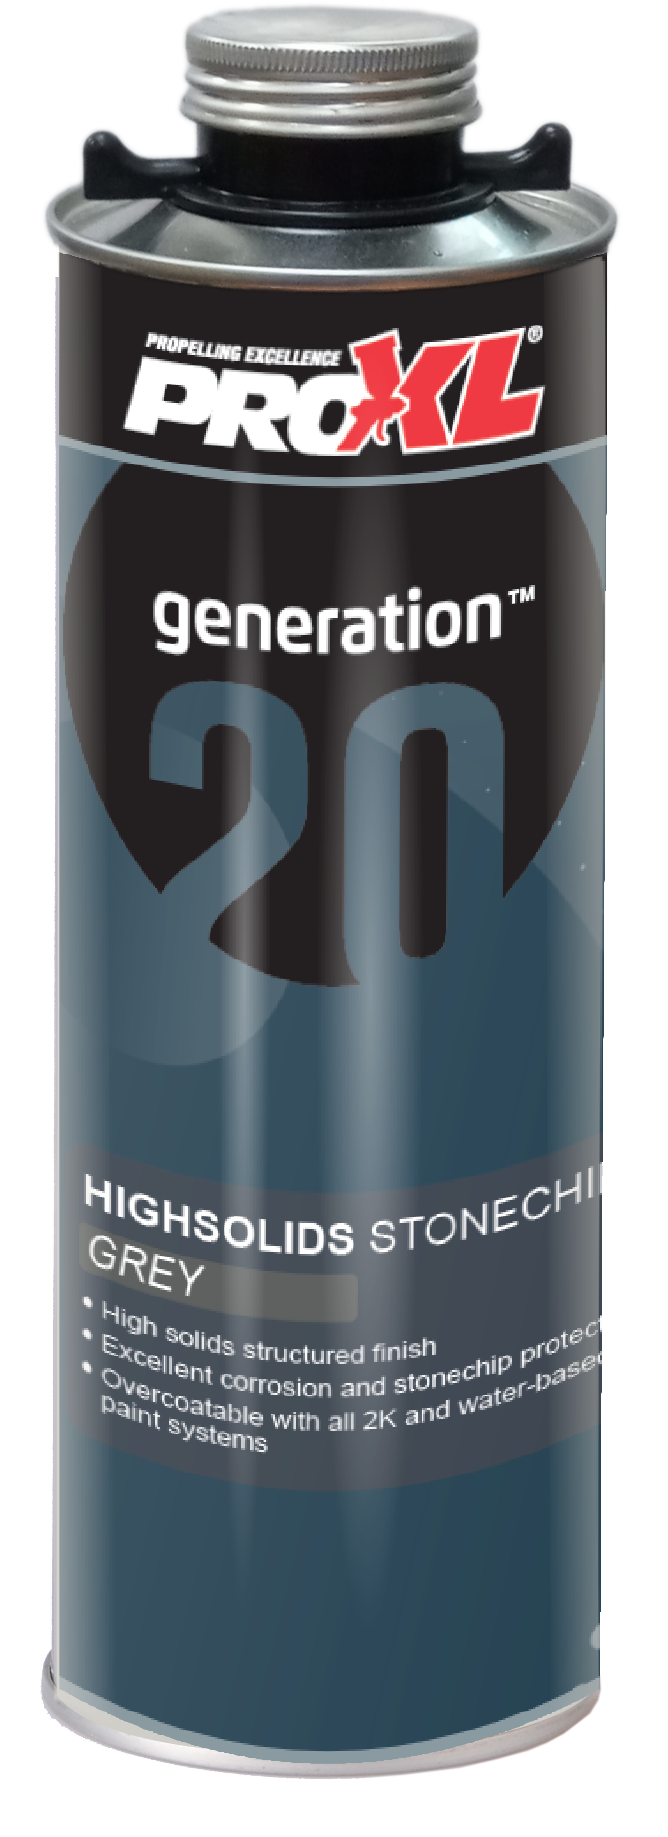 StoneChip High Solids Grey (1lt) Product Image